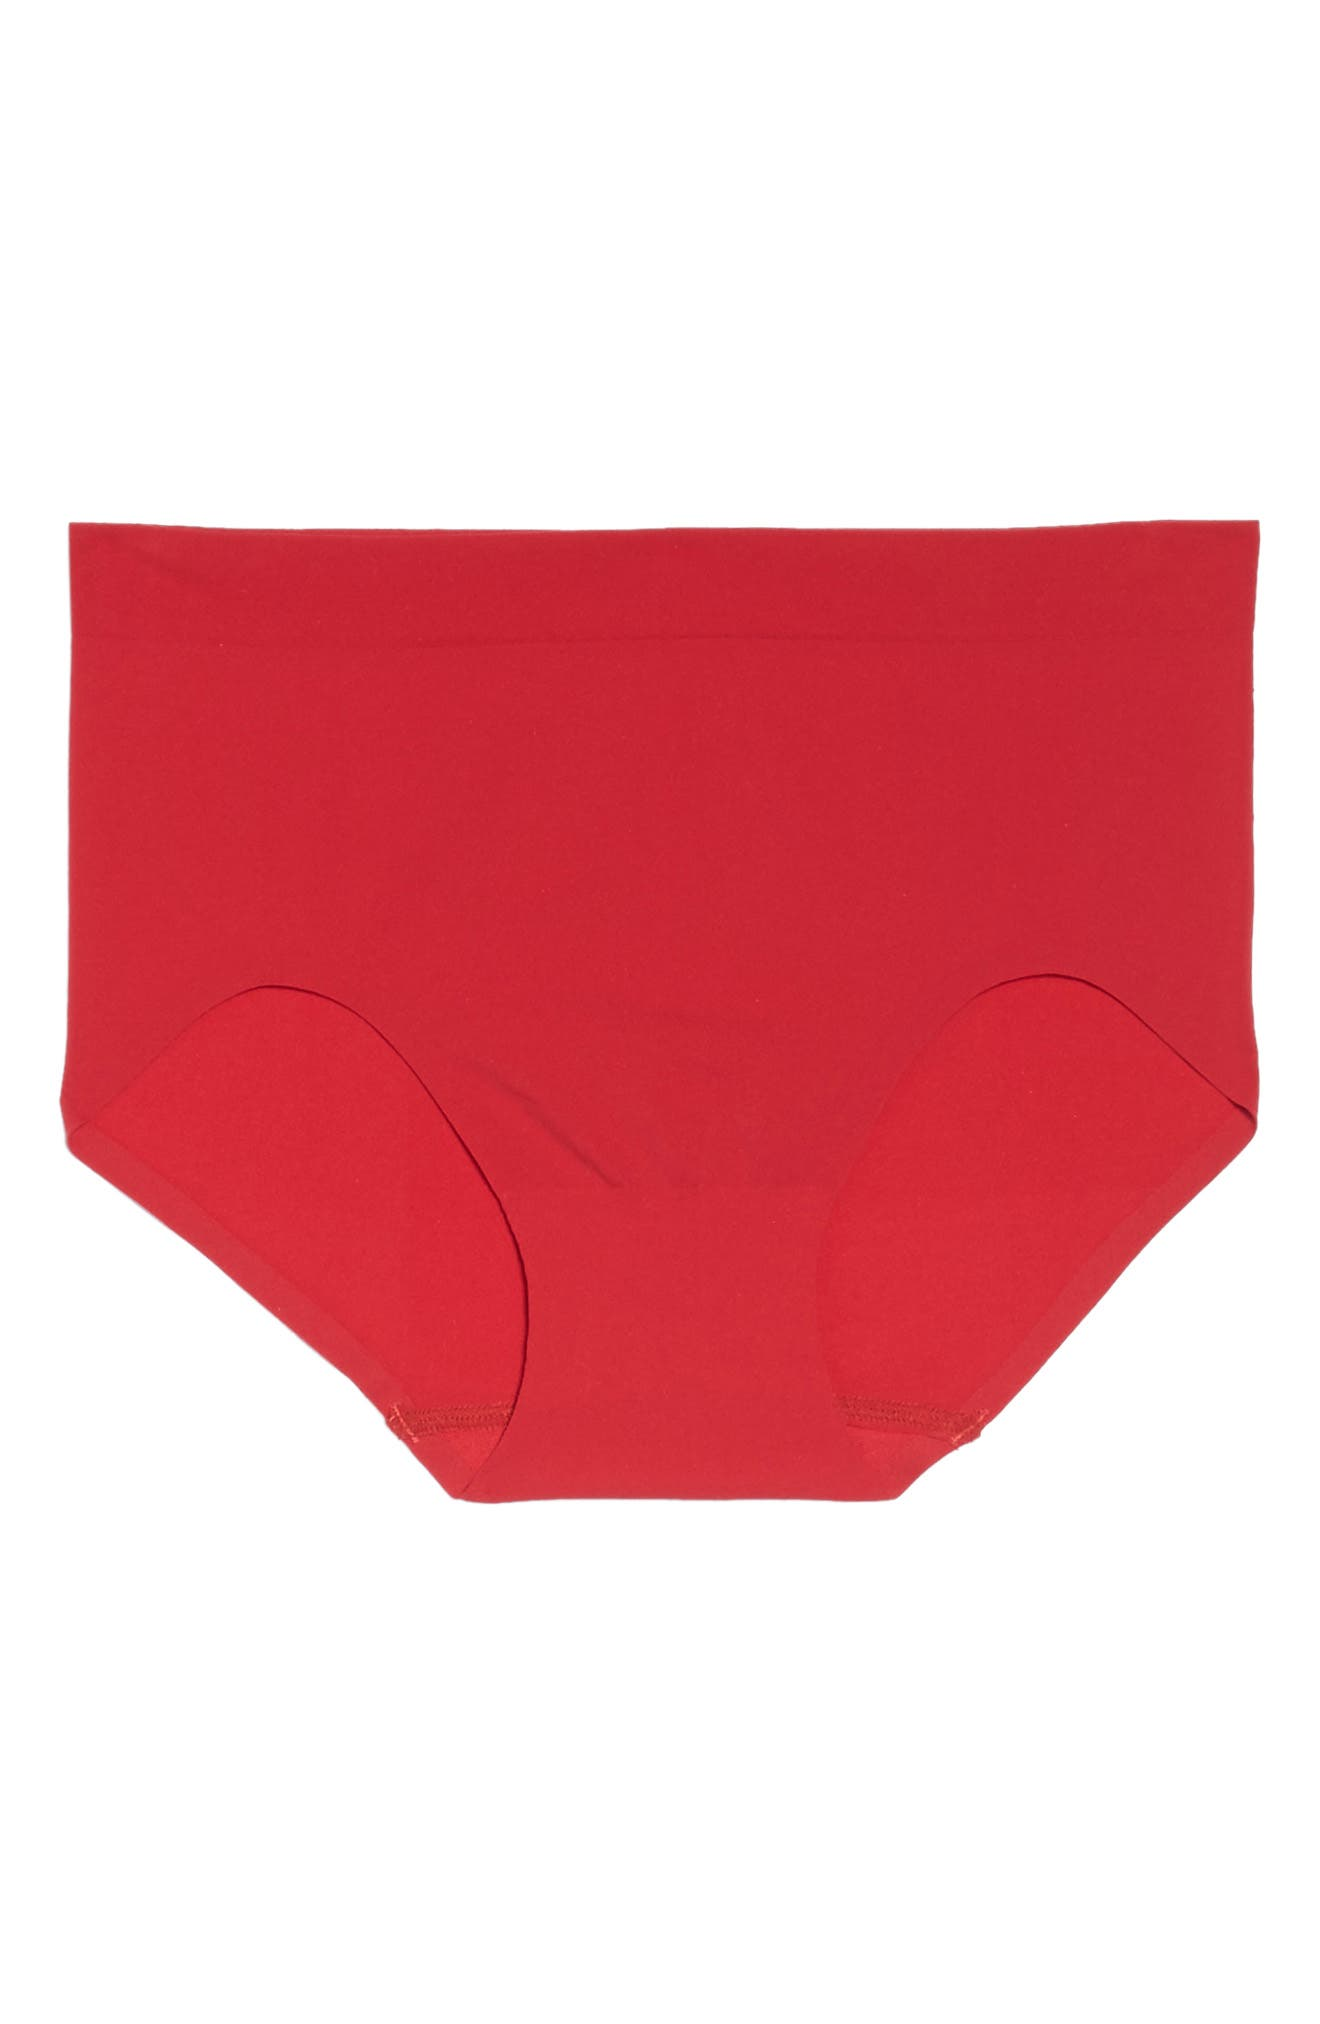 'Skinsense' Seamless Briefs,                             Alternate thumbnail 4, color,                             Tango Red